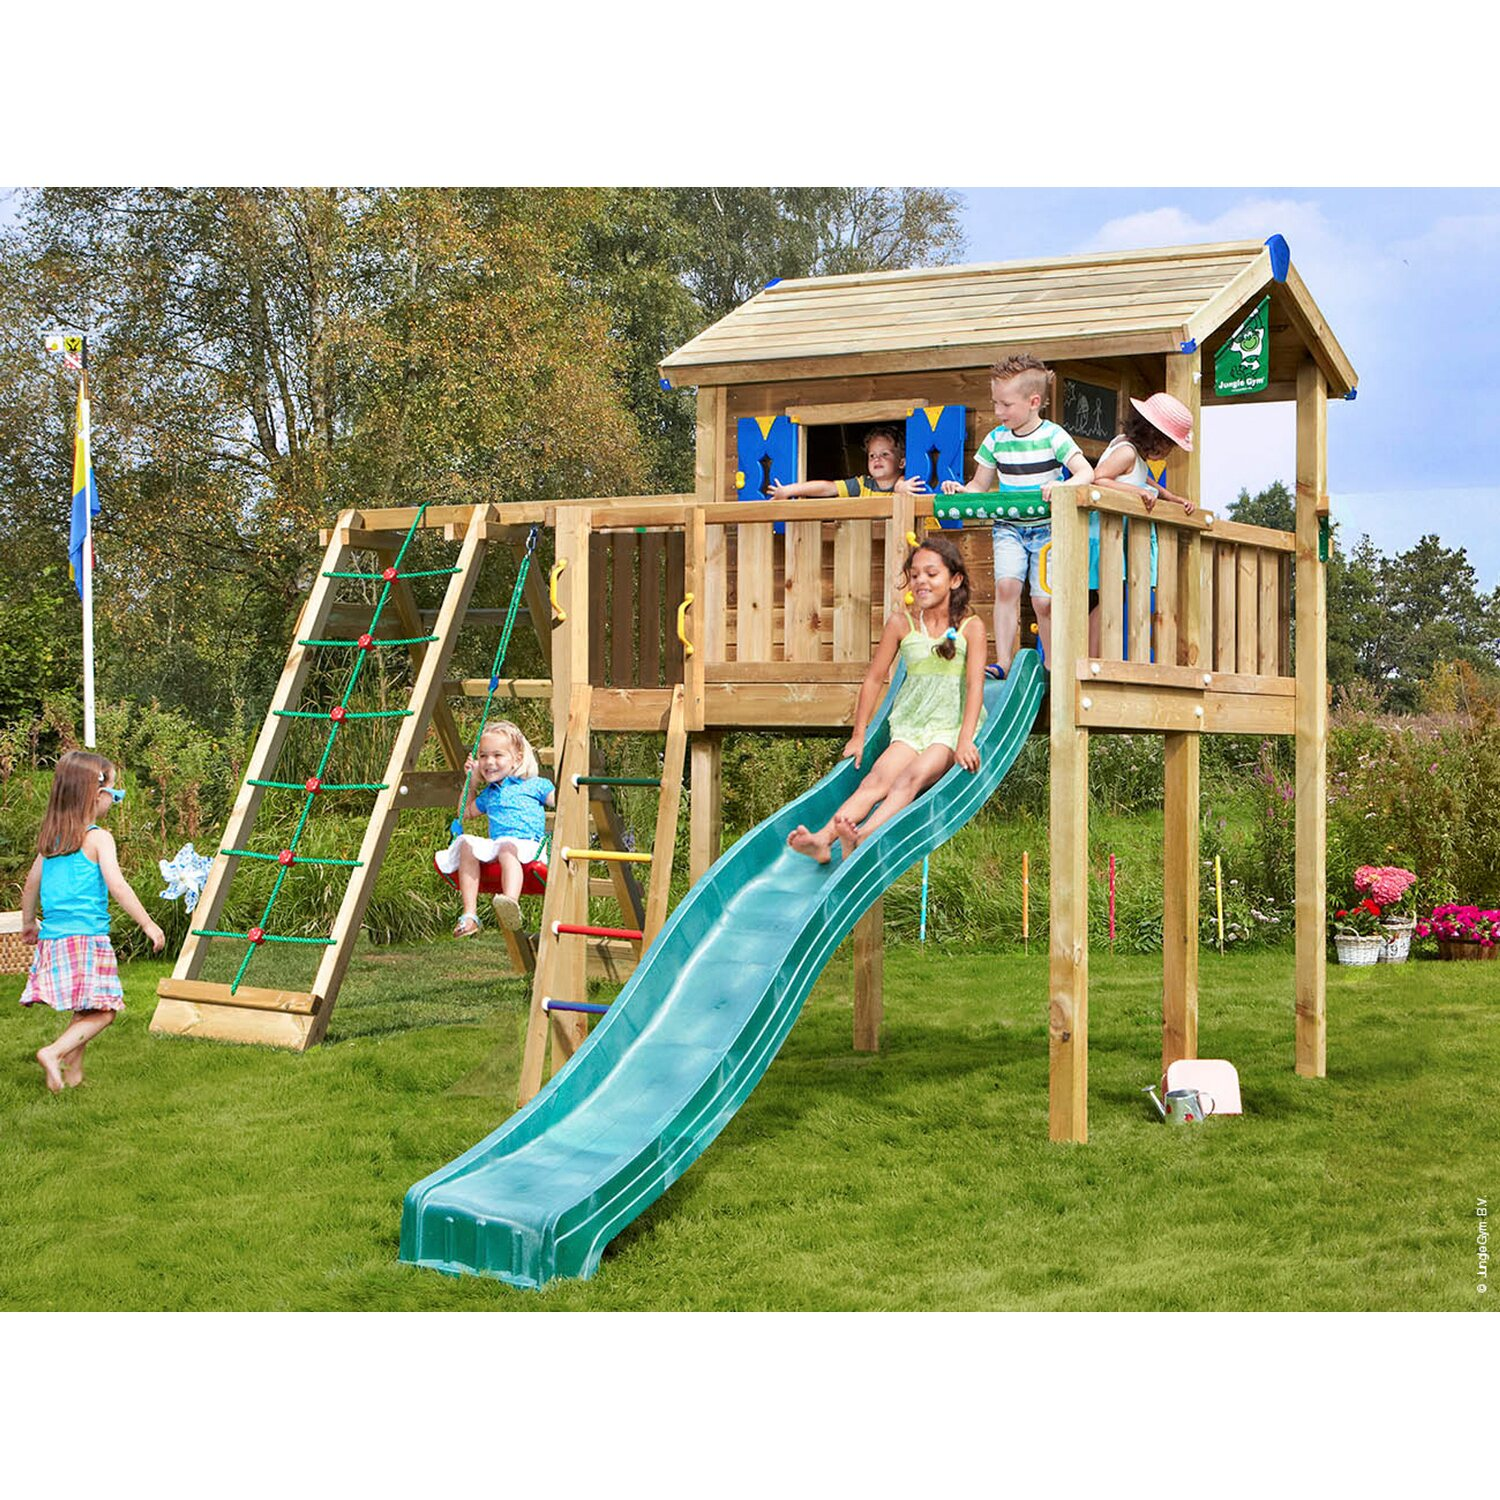 jungle gym spielhaus xl kletterger st mit rutsche dunkelgr n kaufen bei obi. Black Bedroom Furniture Sets. Home Design Ideas